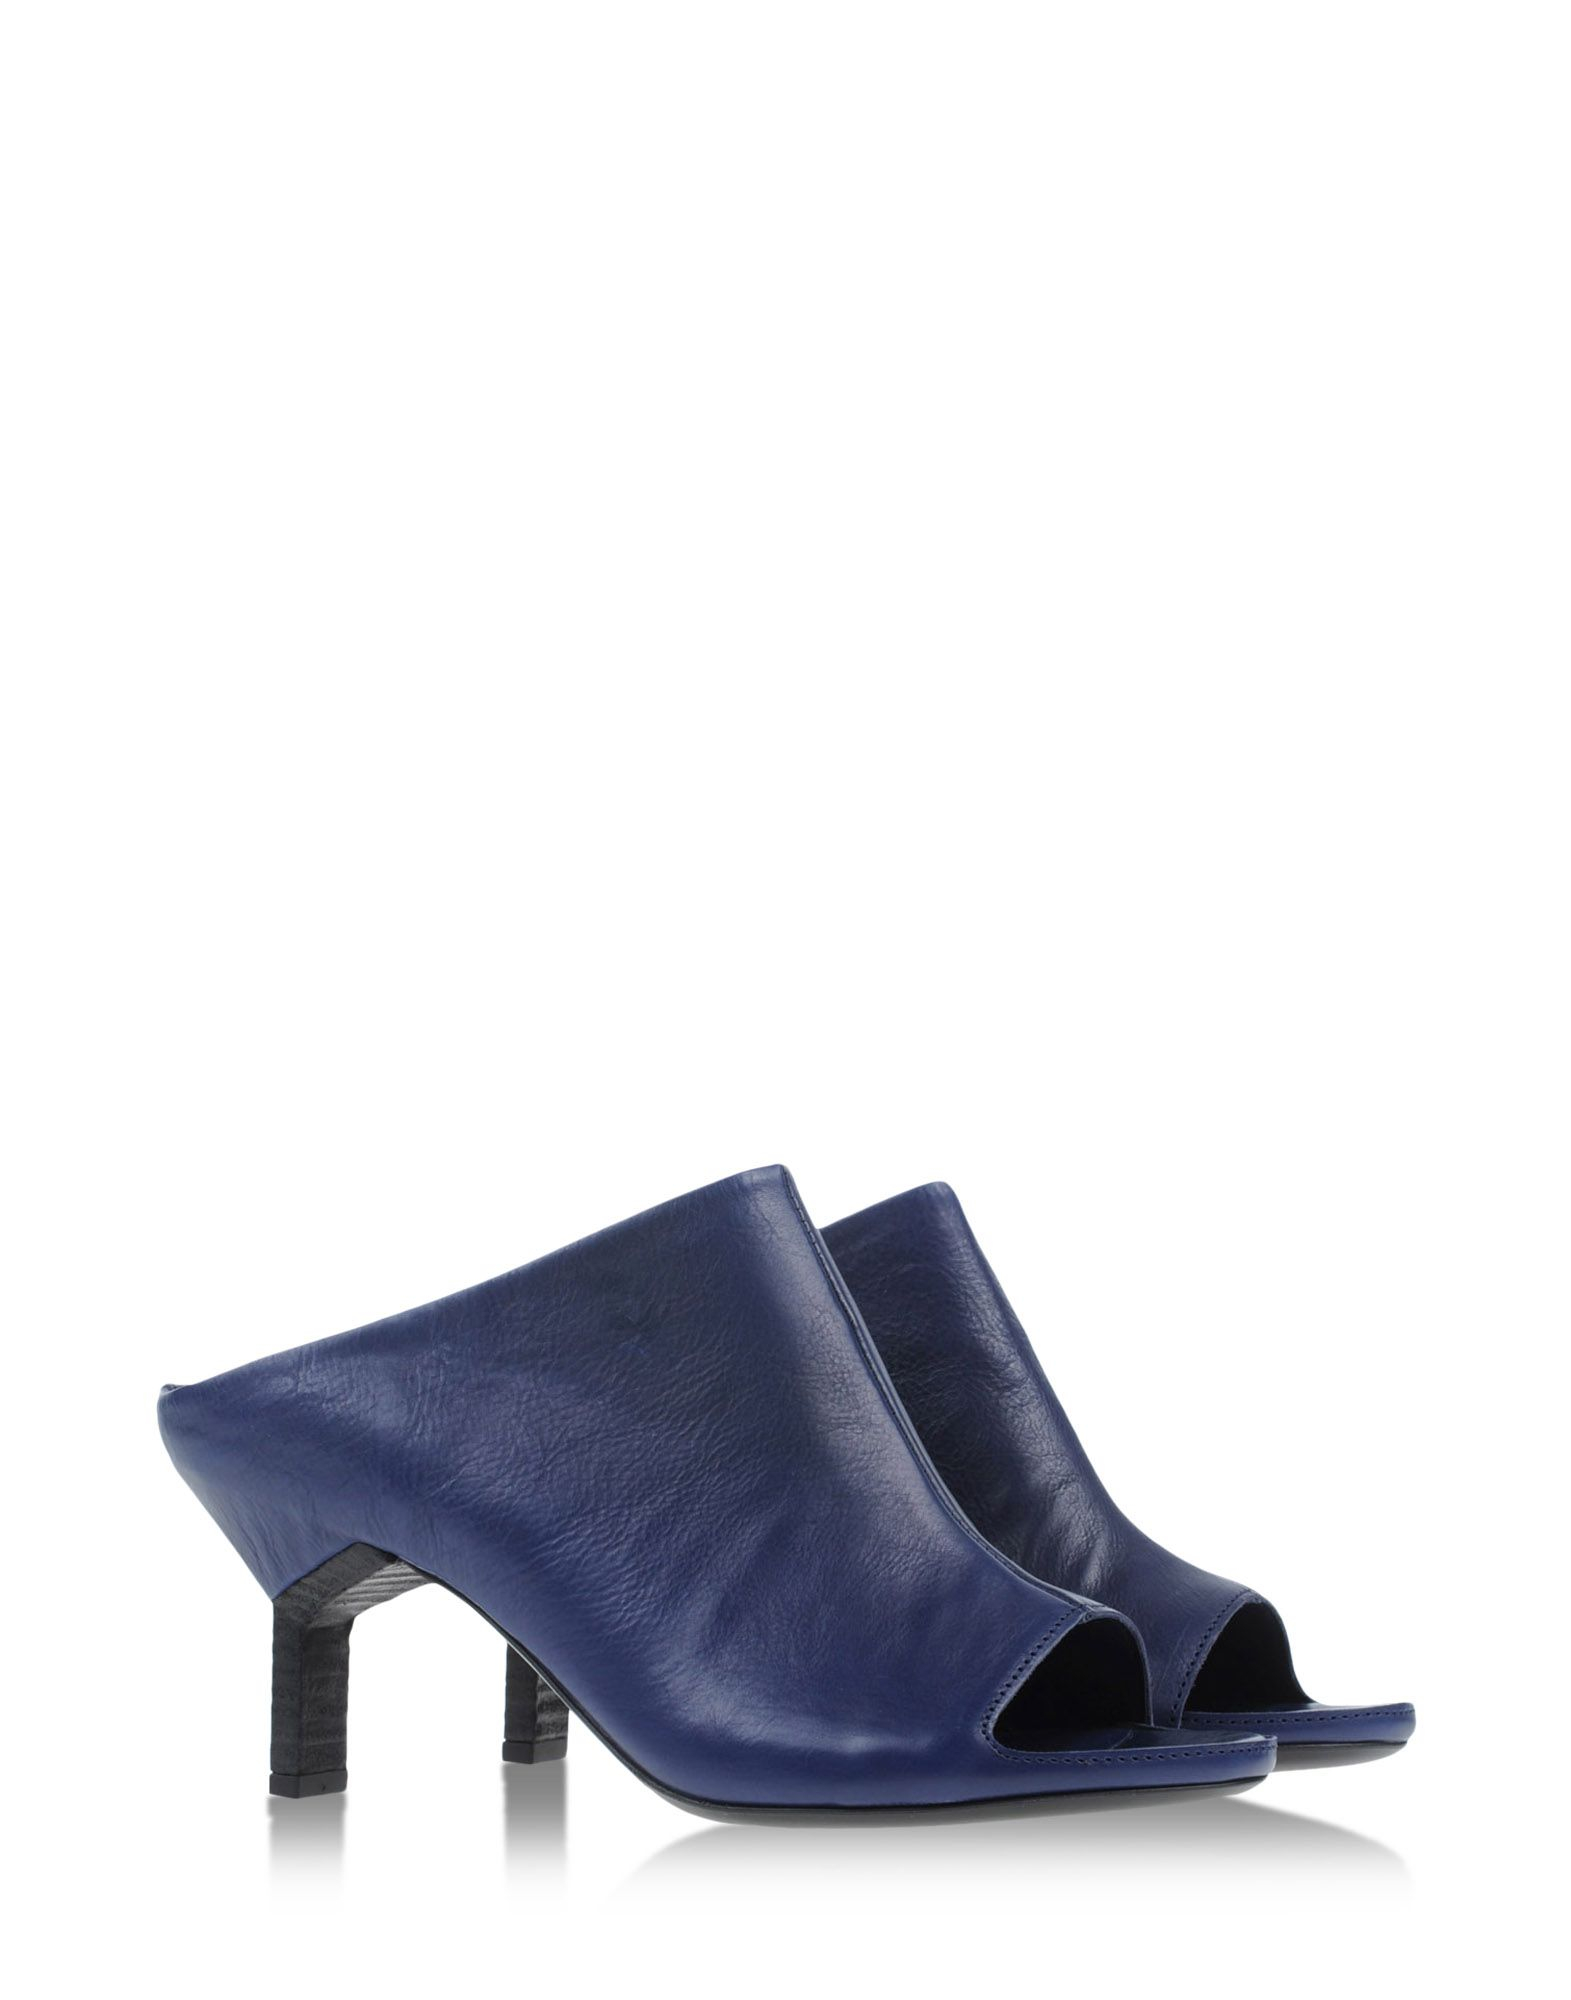 vic matie 39 mules clogs in blue dark blue lyst. Black Bedroom Furniture Sets. Home Design Ideas